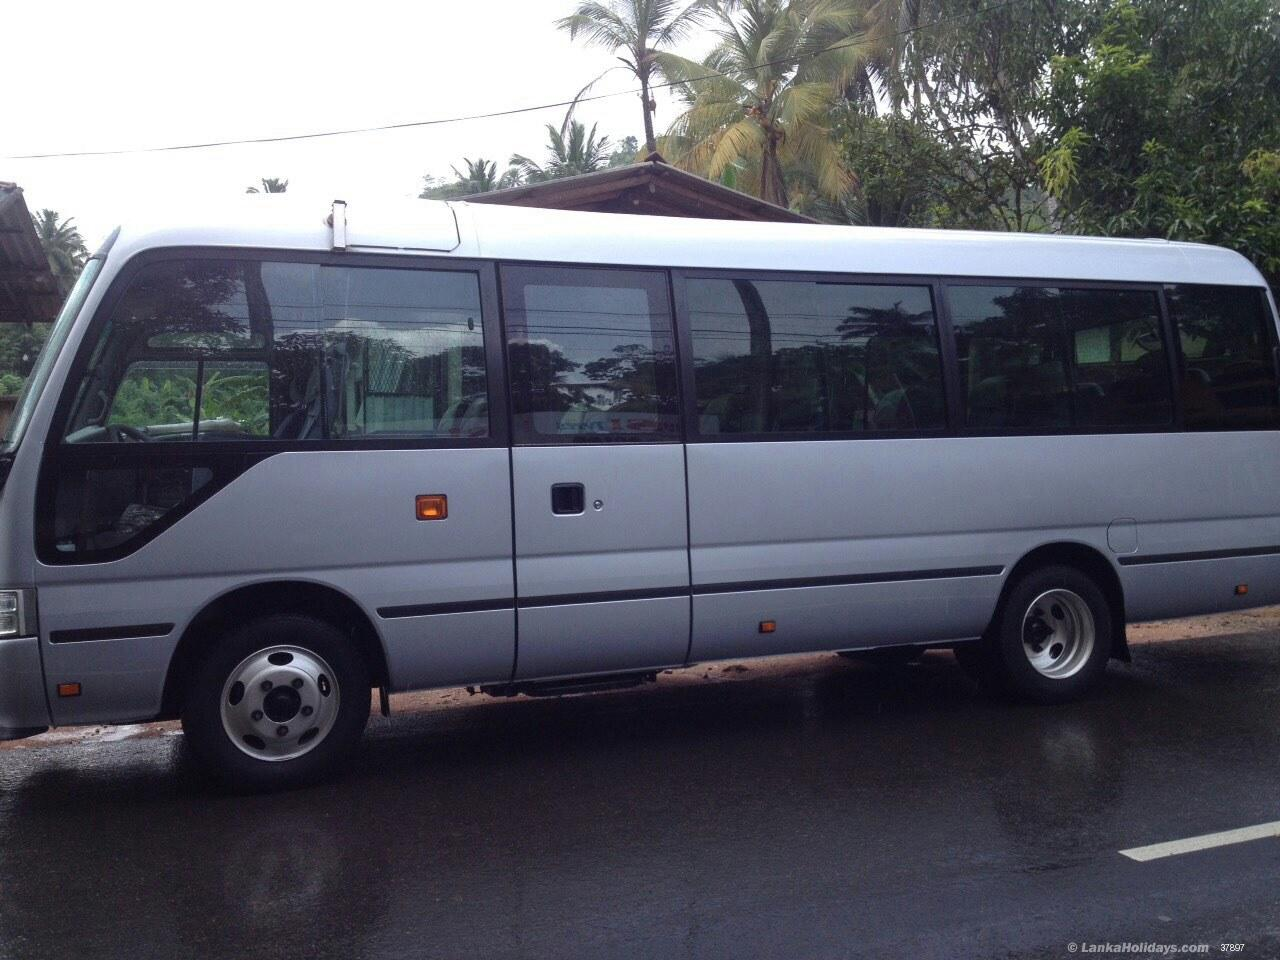 Sri Lanka holiday Car hire